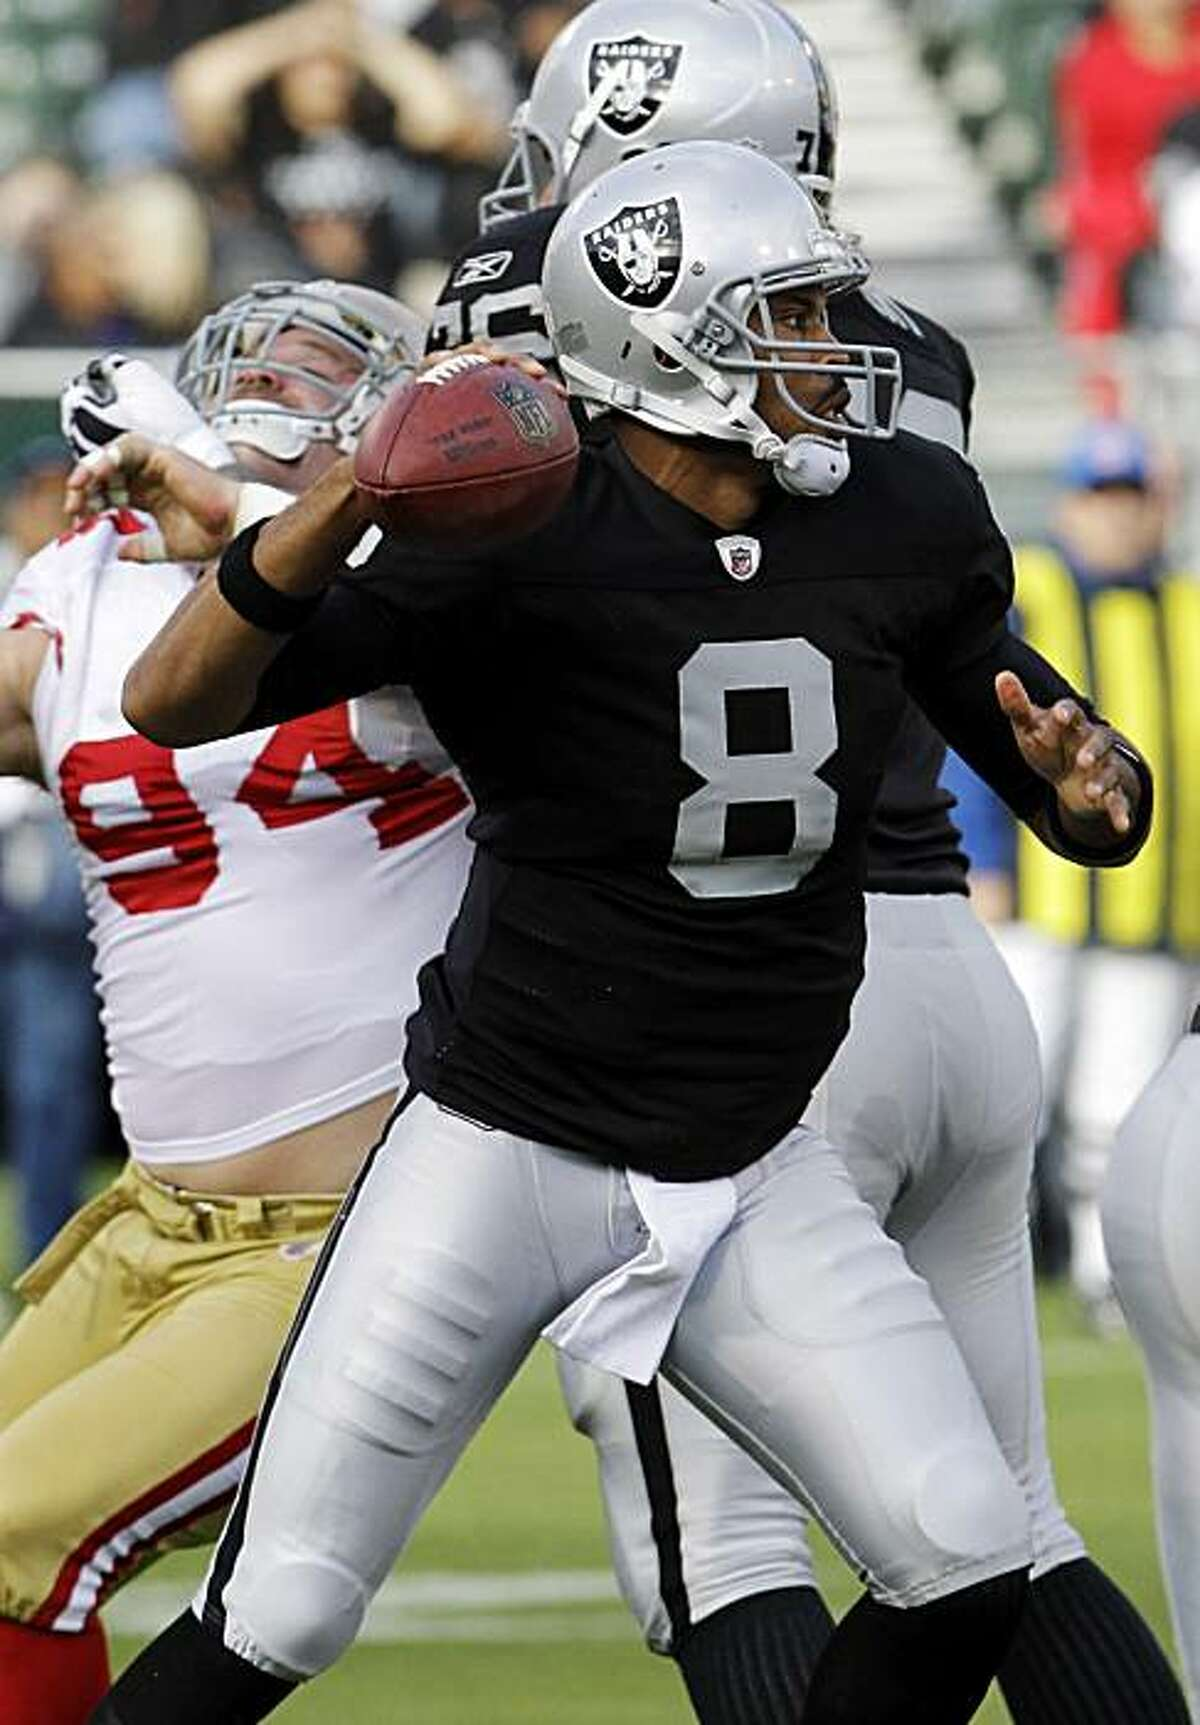 Oakland Raiders quarterback Jason Campbell (8) throws under pressure from San Francisco 49ers defensive tackle Justin Smith, left, during the first half of a preseason NFL football game in Oakland, Calif., Saturday, Aug. 28, 2010.